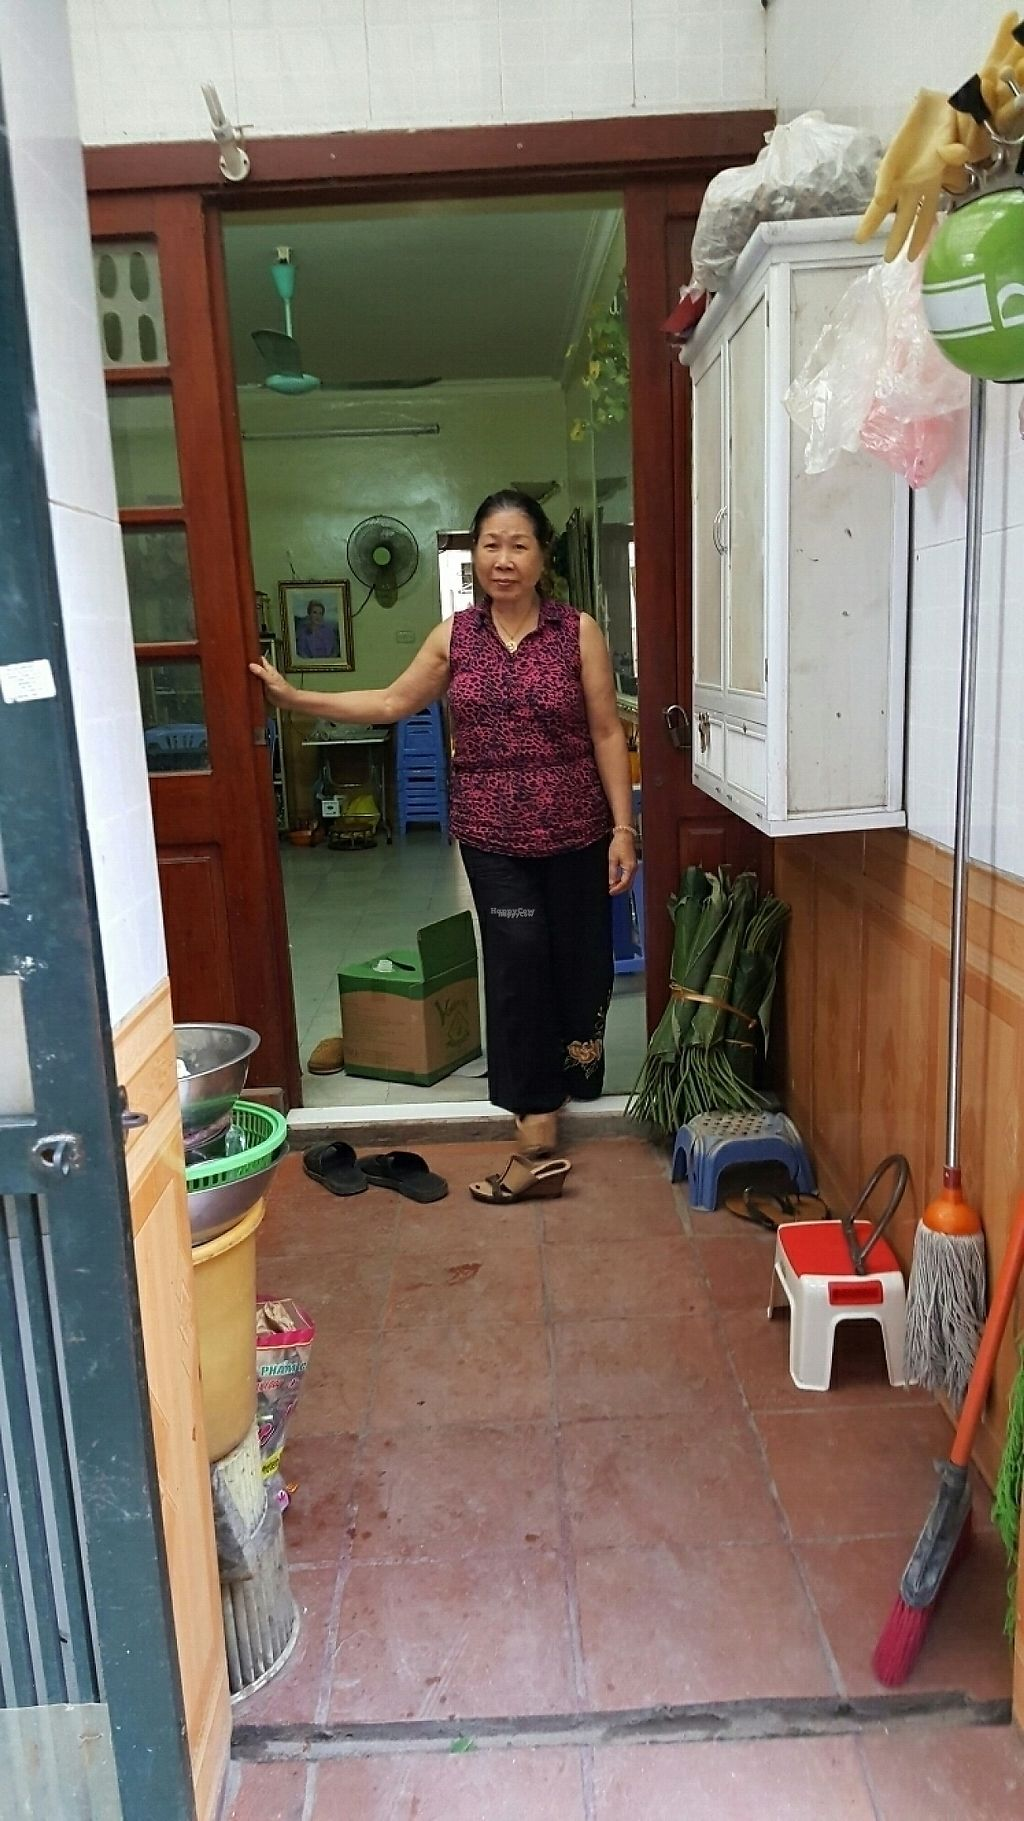 "Photo of Au Lac - Duong Lang  by <a href=""/members/profile/yehadut"">yehadut</a> <br/>Tiny place looks like this woman's personal kitchen <br/> December 9, 2016  - <a href='/contact/abuse/image/48867/198444'>Report</a>"